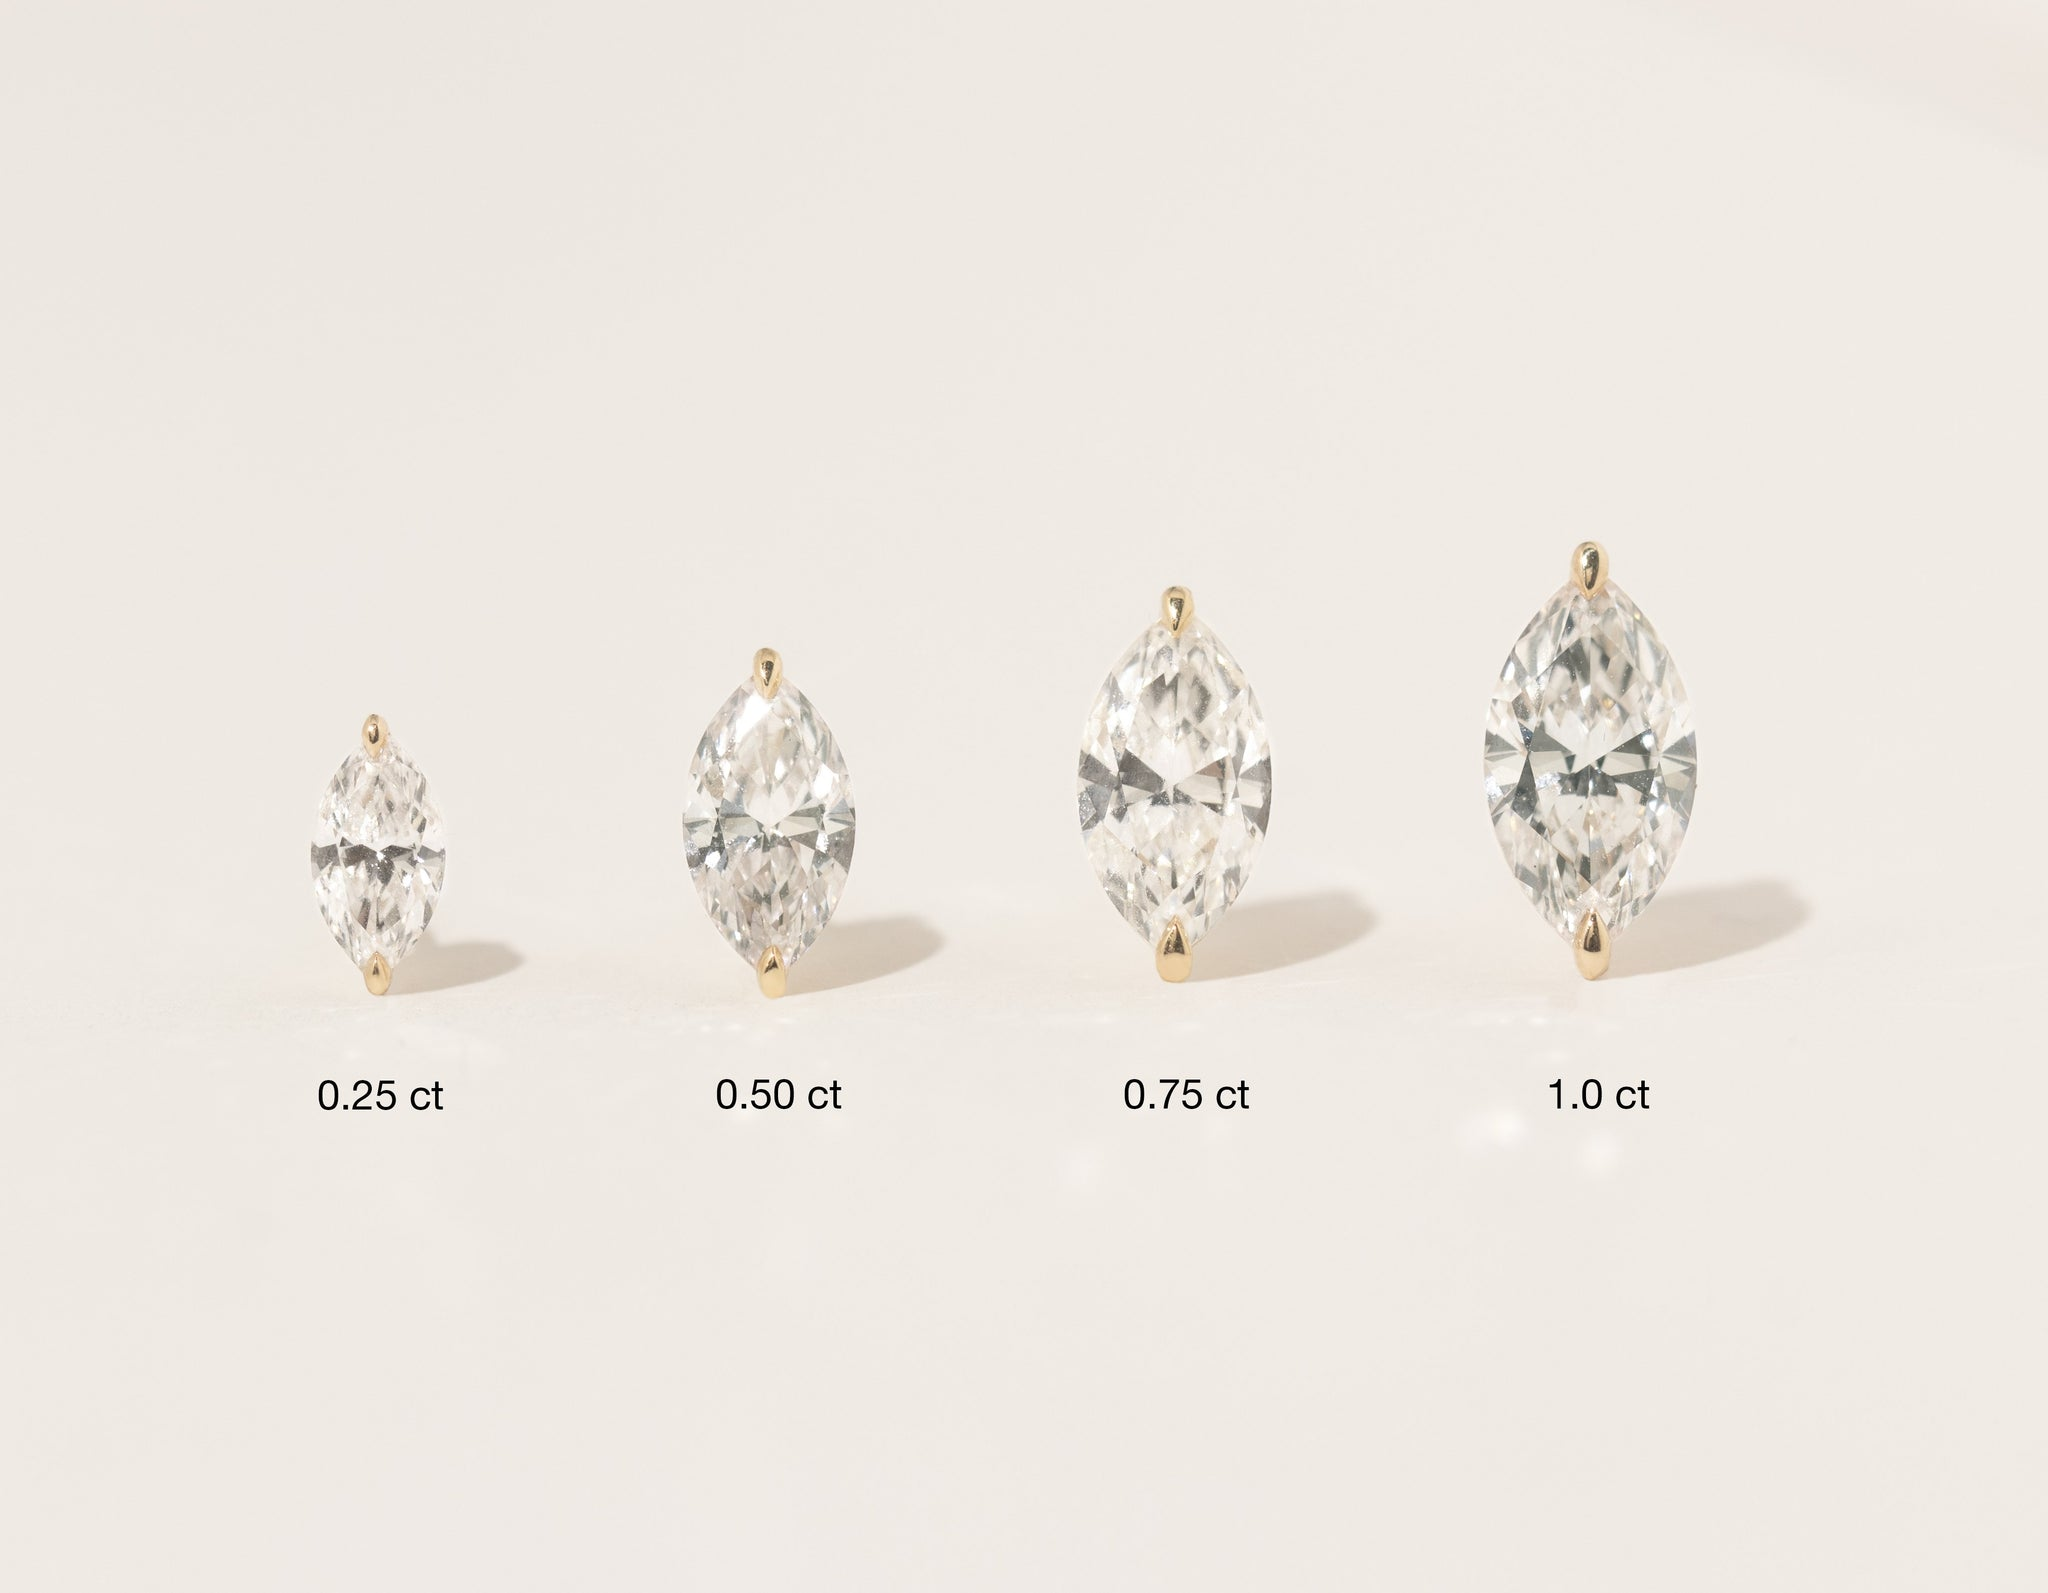 Vrai 14K solid gold solitaire marquise diamond stud earrings 1ct .75ct .50 carat .25 carat minimalist simple jewelry